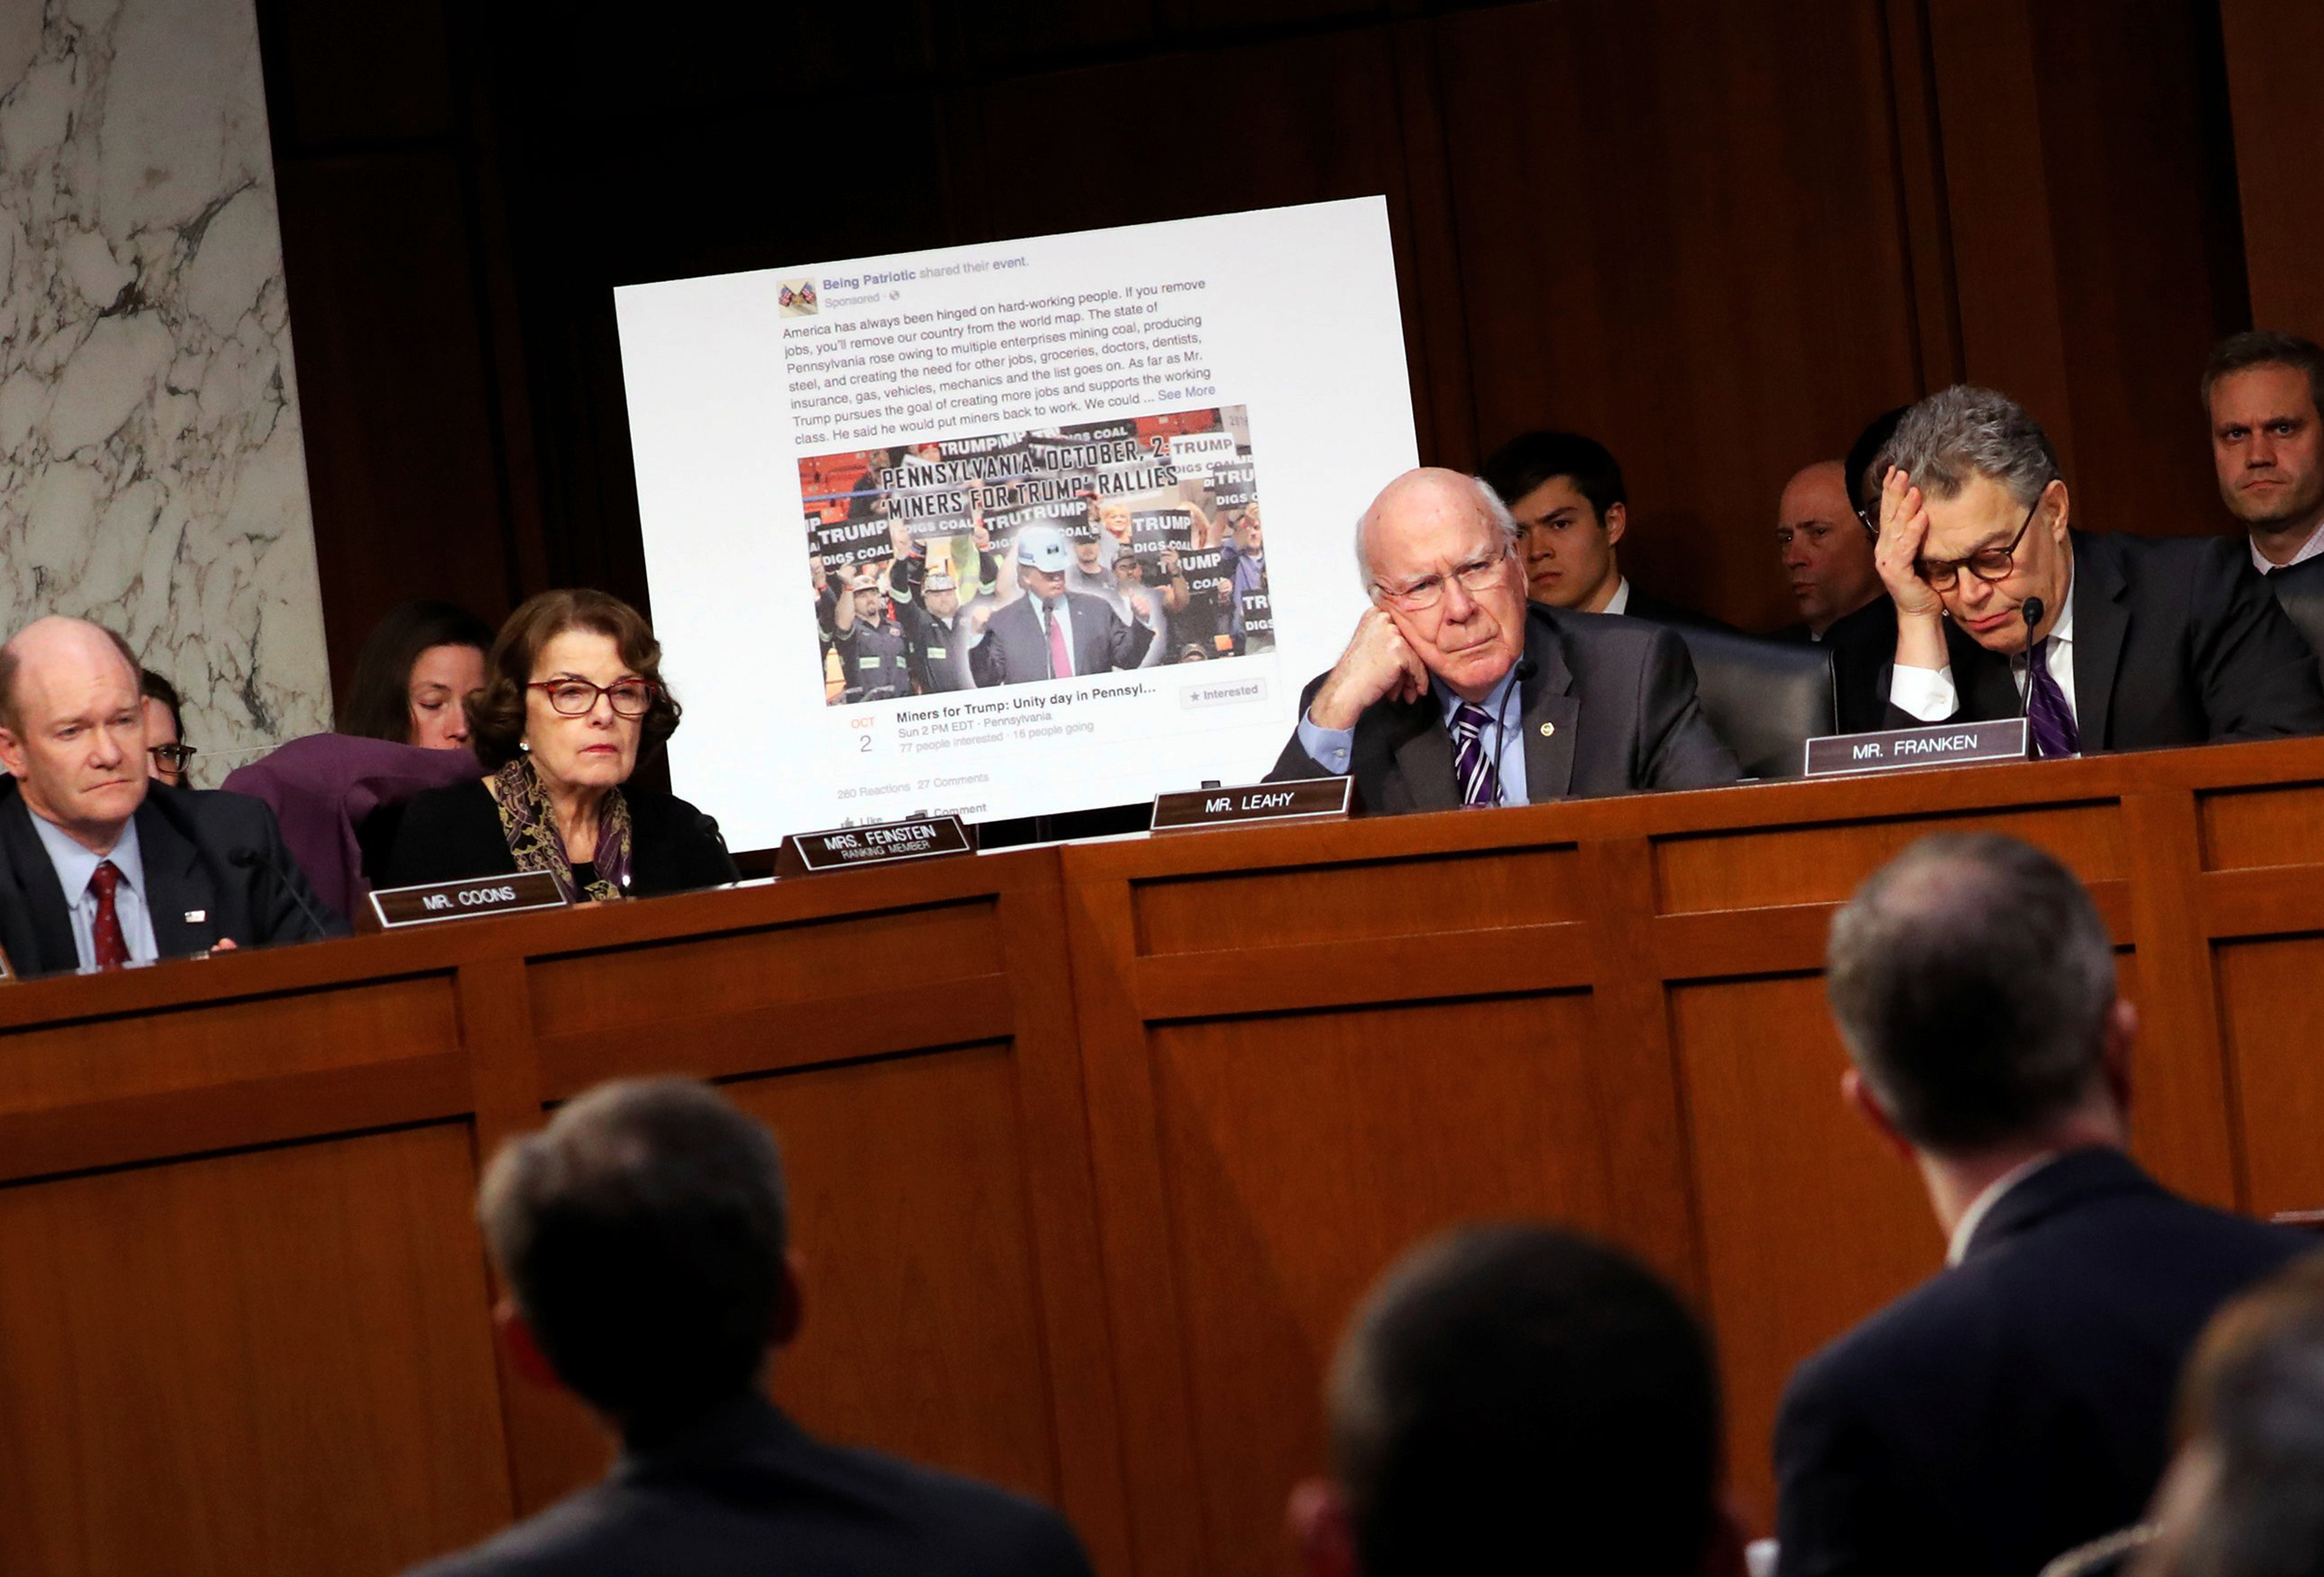 Image: Facebook's Stretch, Twitter's Edgett, and Google's Salgado testify before a Senate Judiciary subcommittee hearing on alleged Russian interference in the 2016 U.S. elections, in Washington